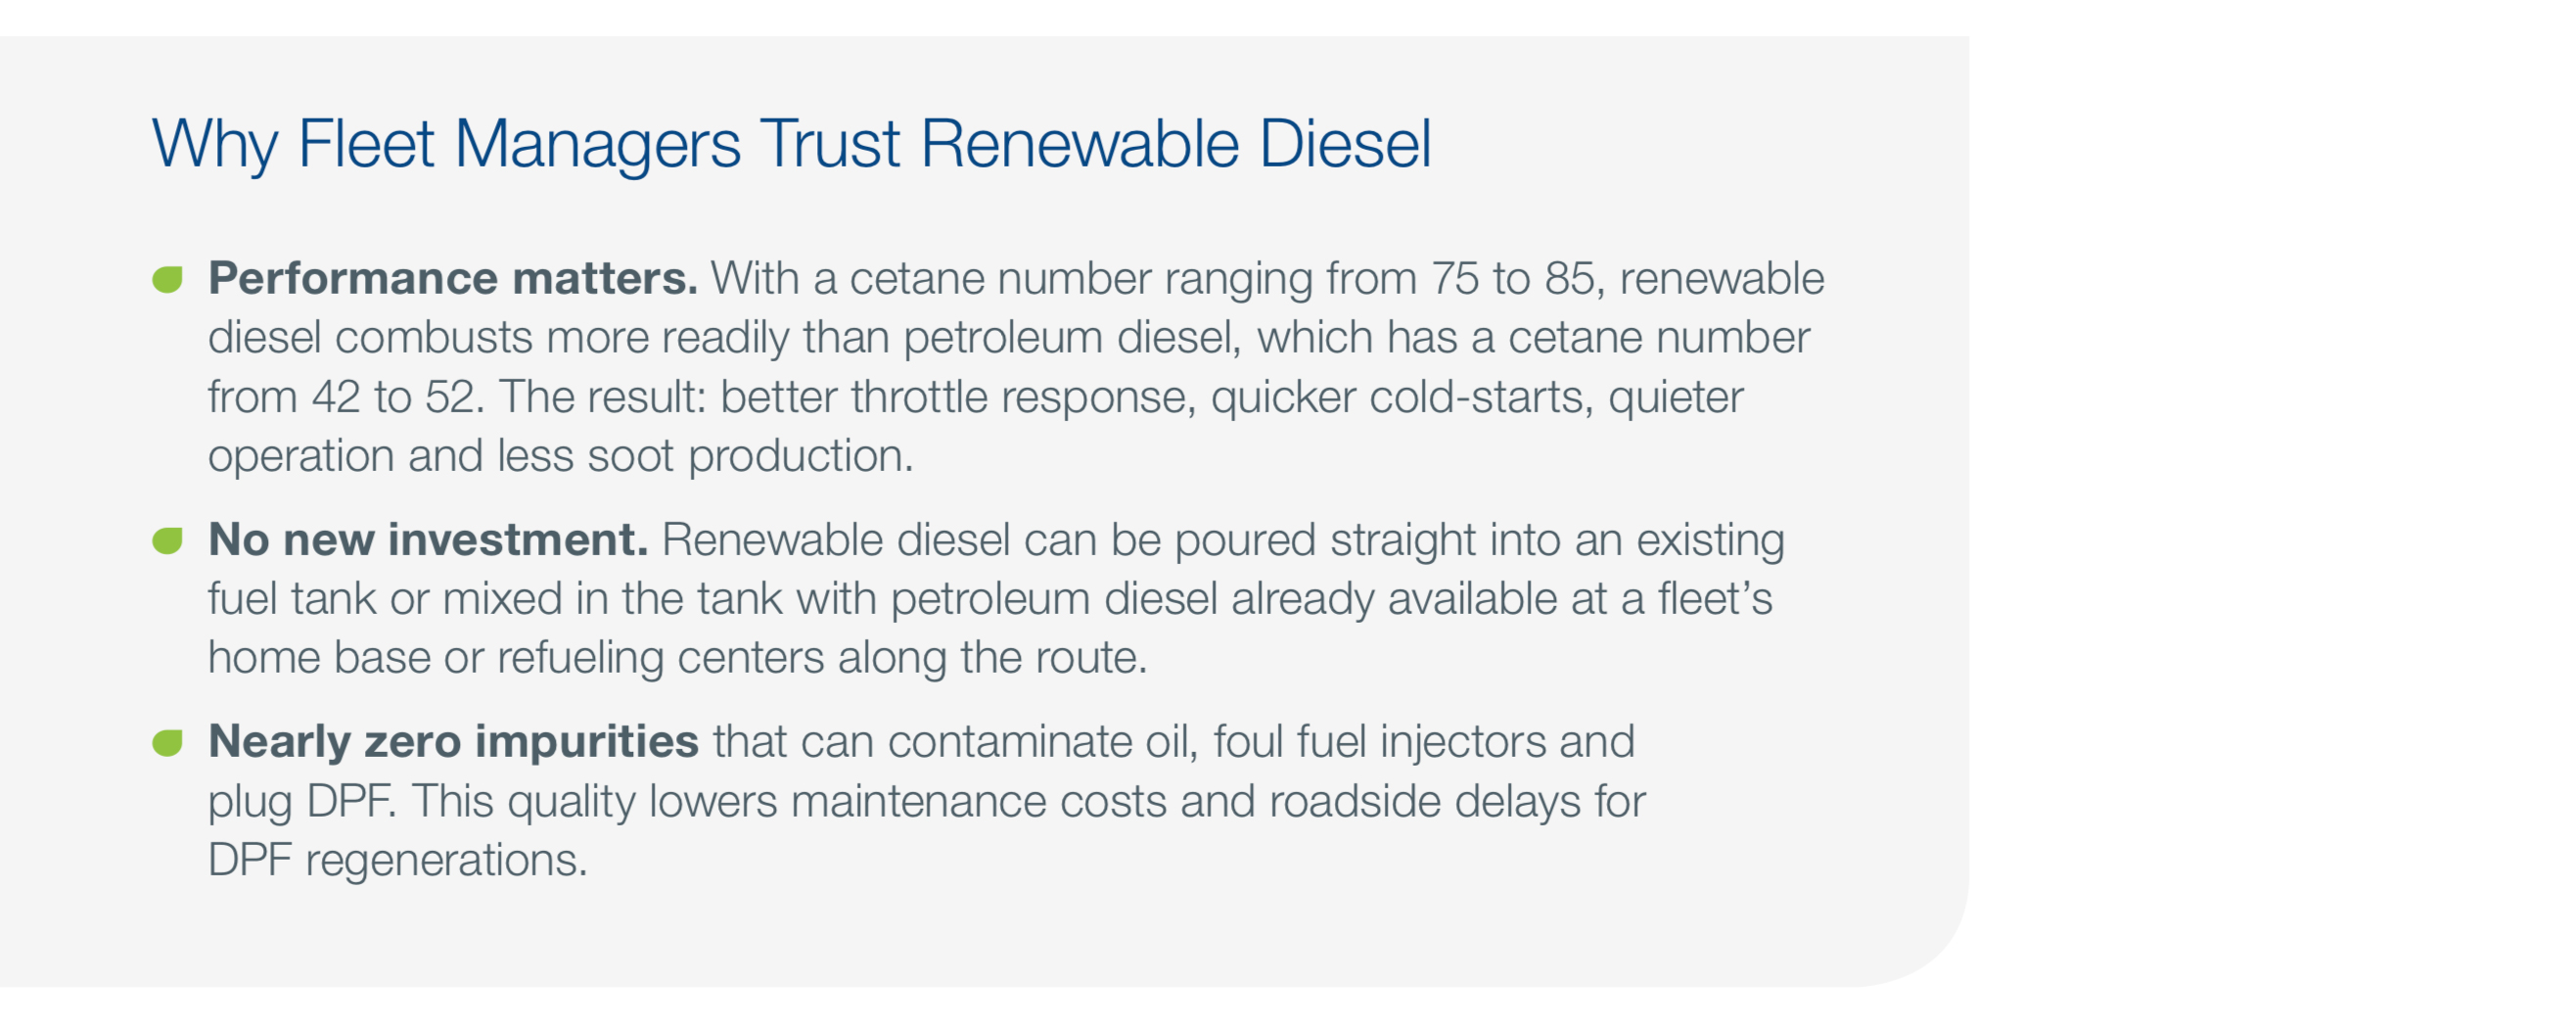 Why Trust Renewable